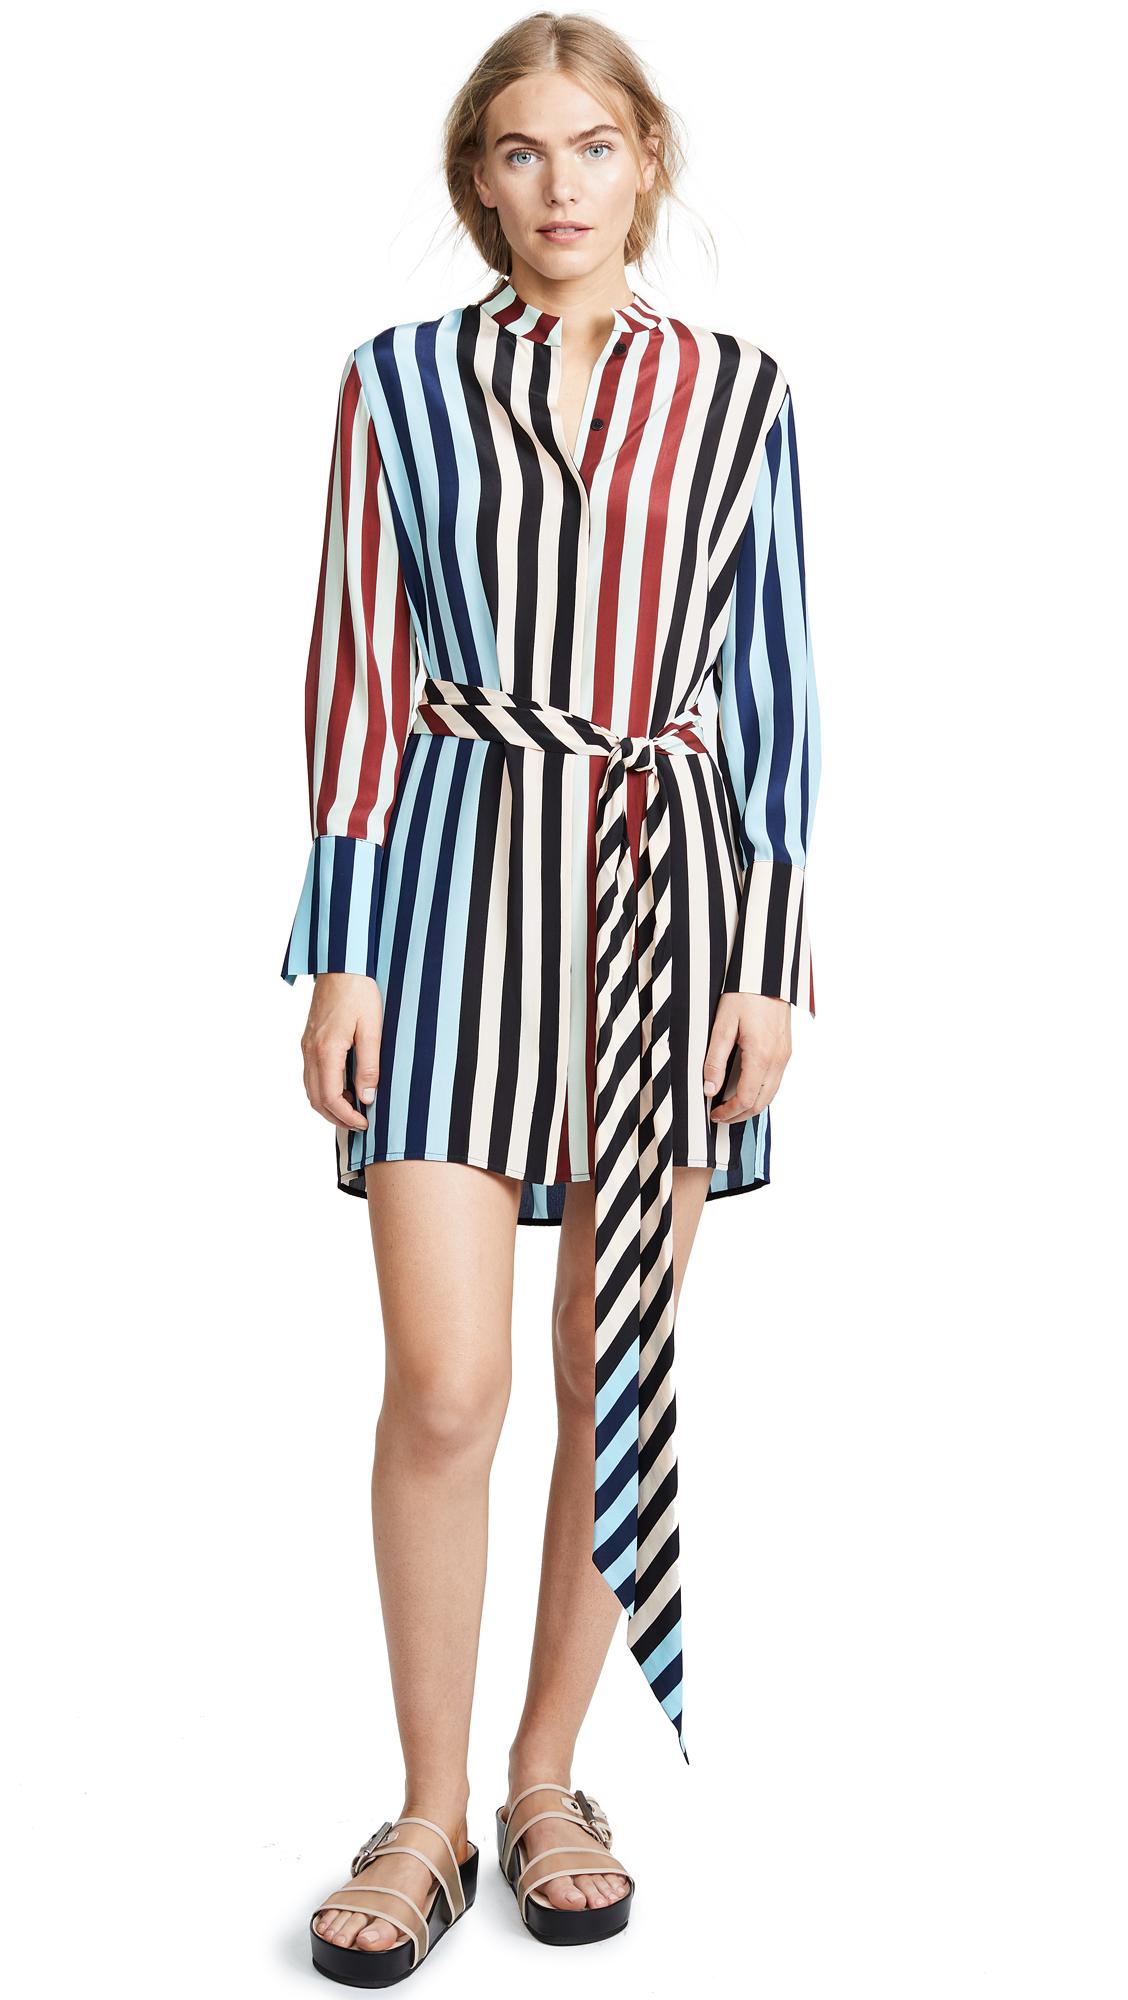 Diane von Furstenberg Striped Shirt Dress In Multi Stripe